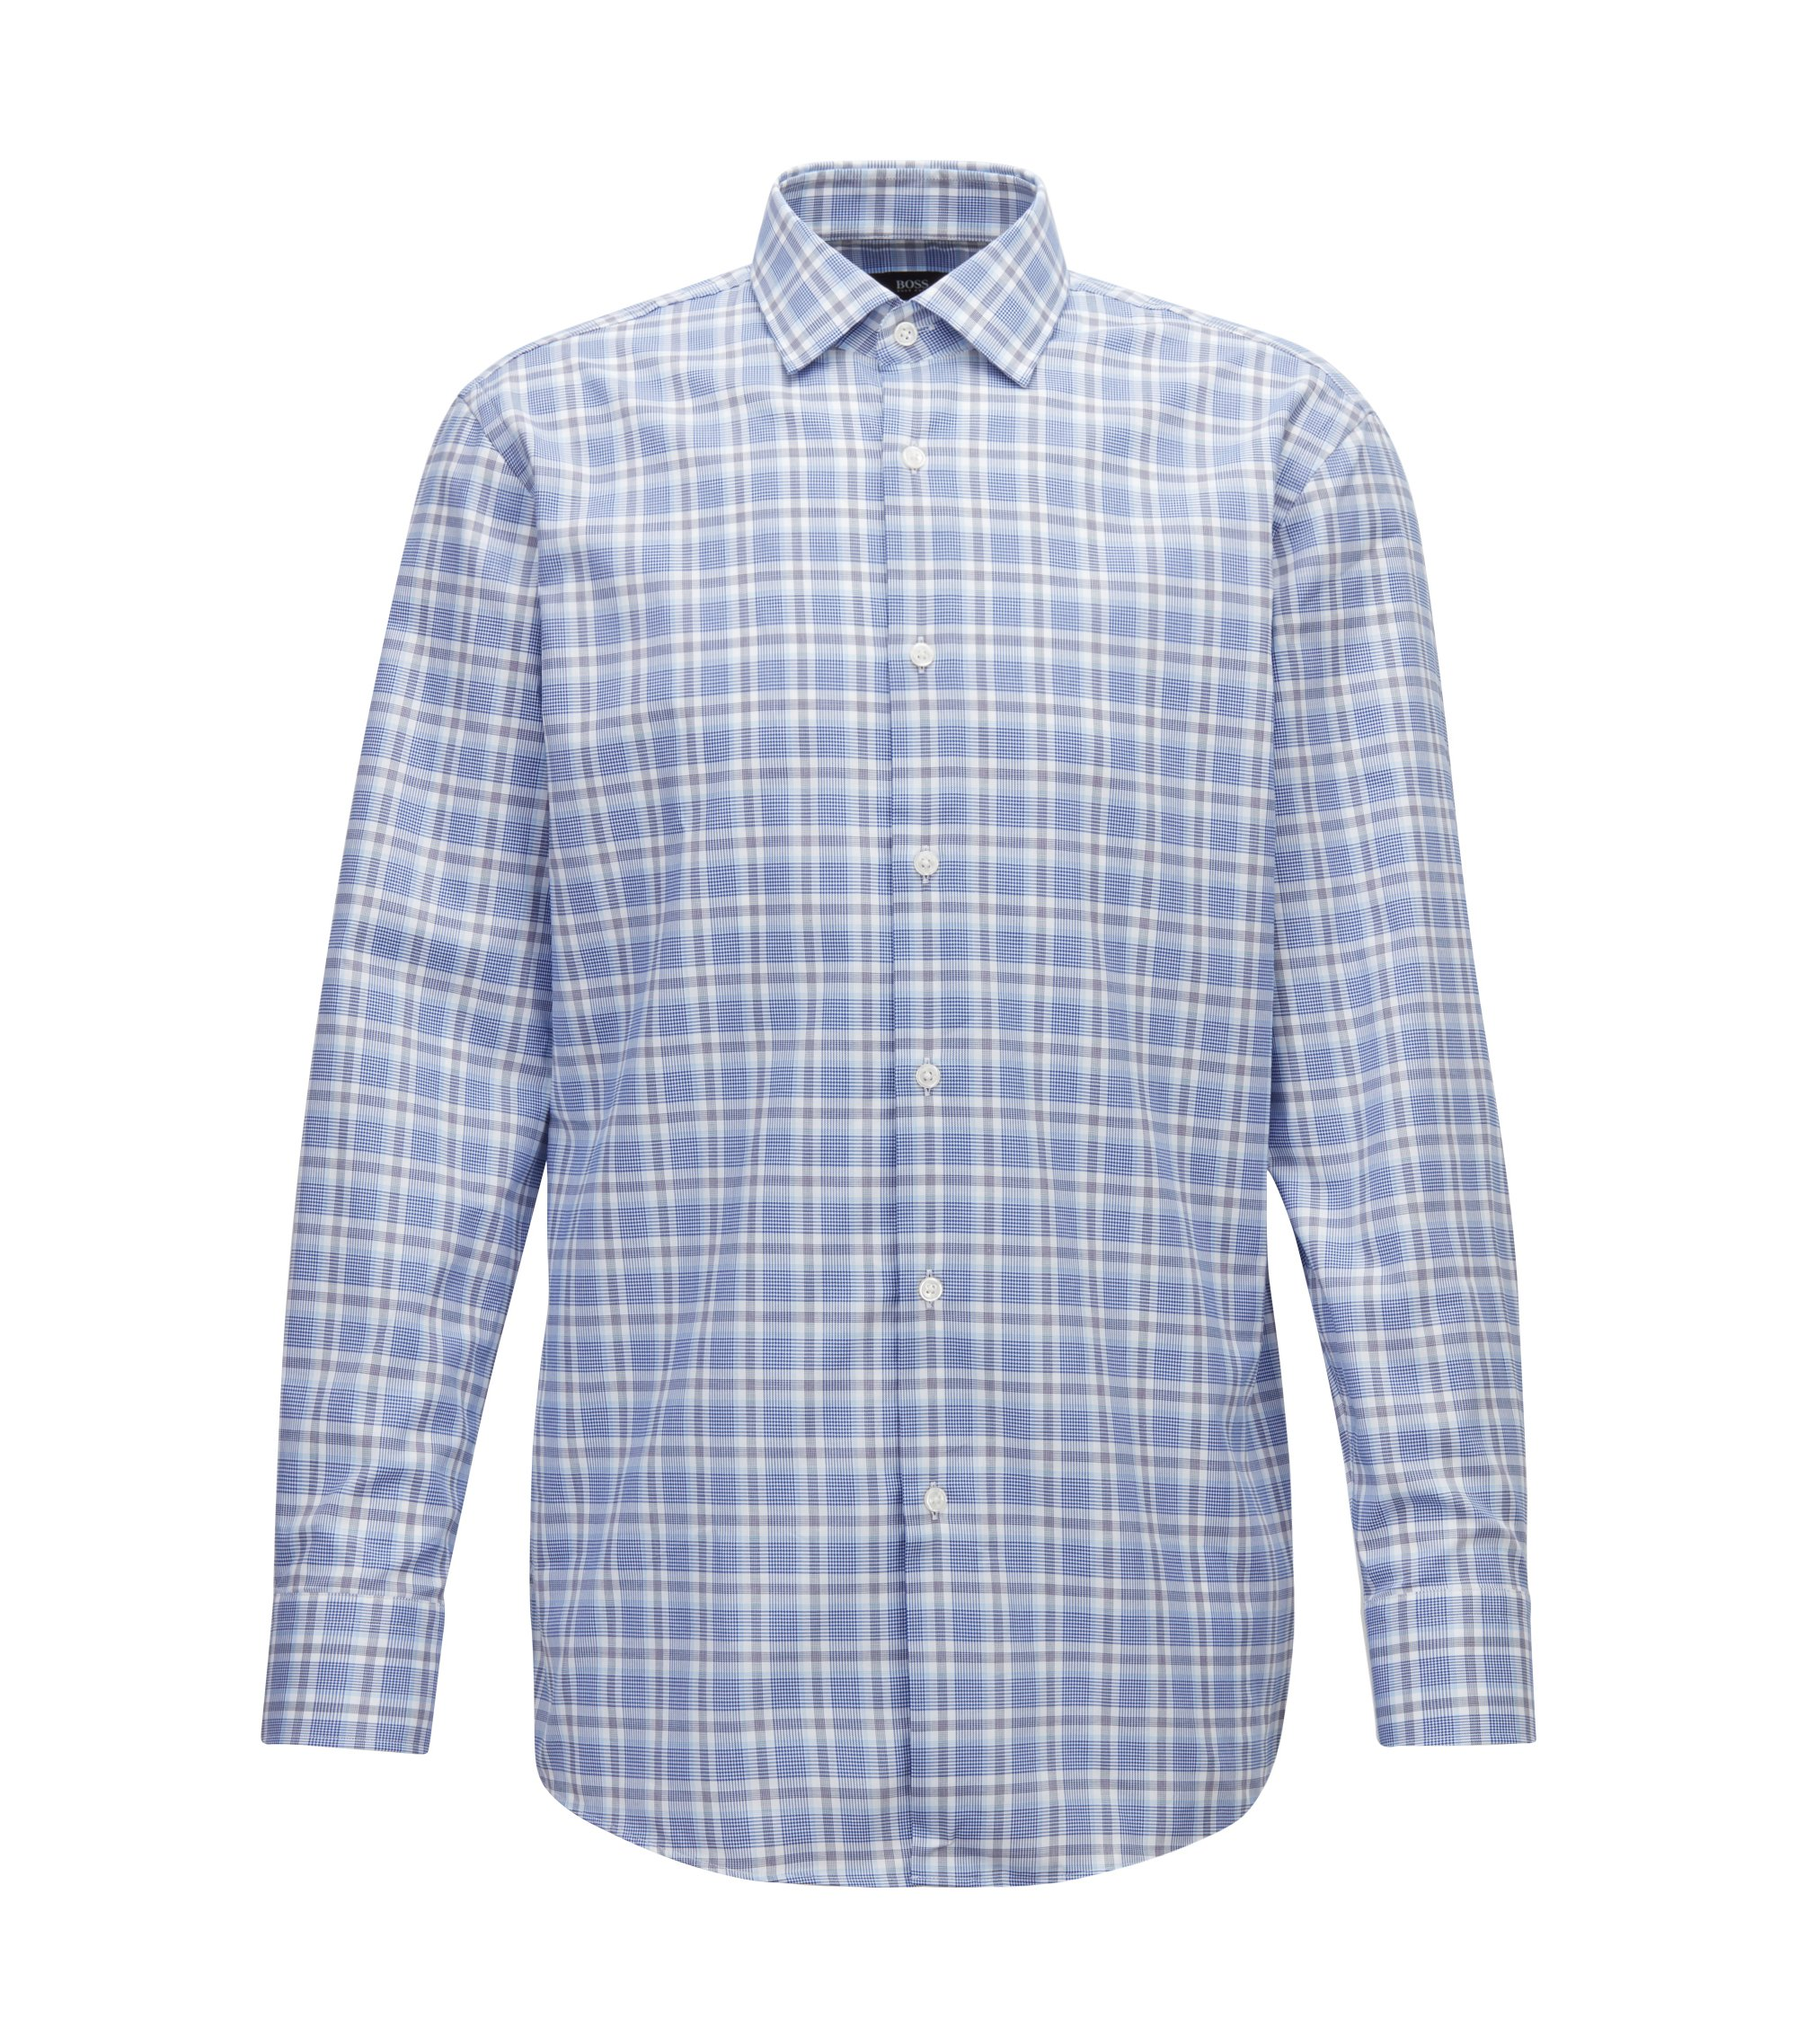 Slim-fit shirt in Glen-check cotton twill, Open Blue